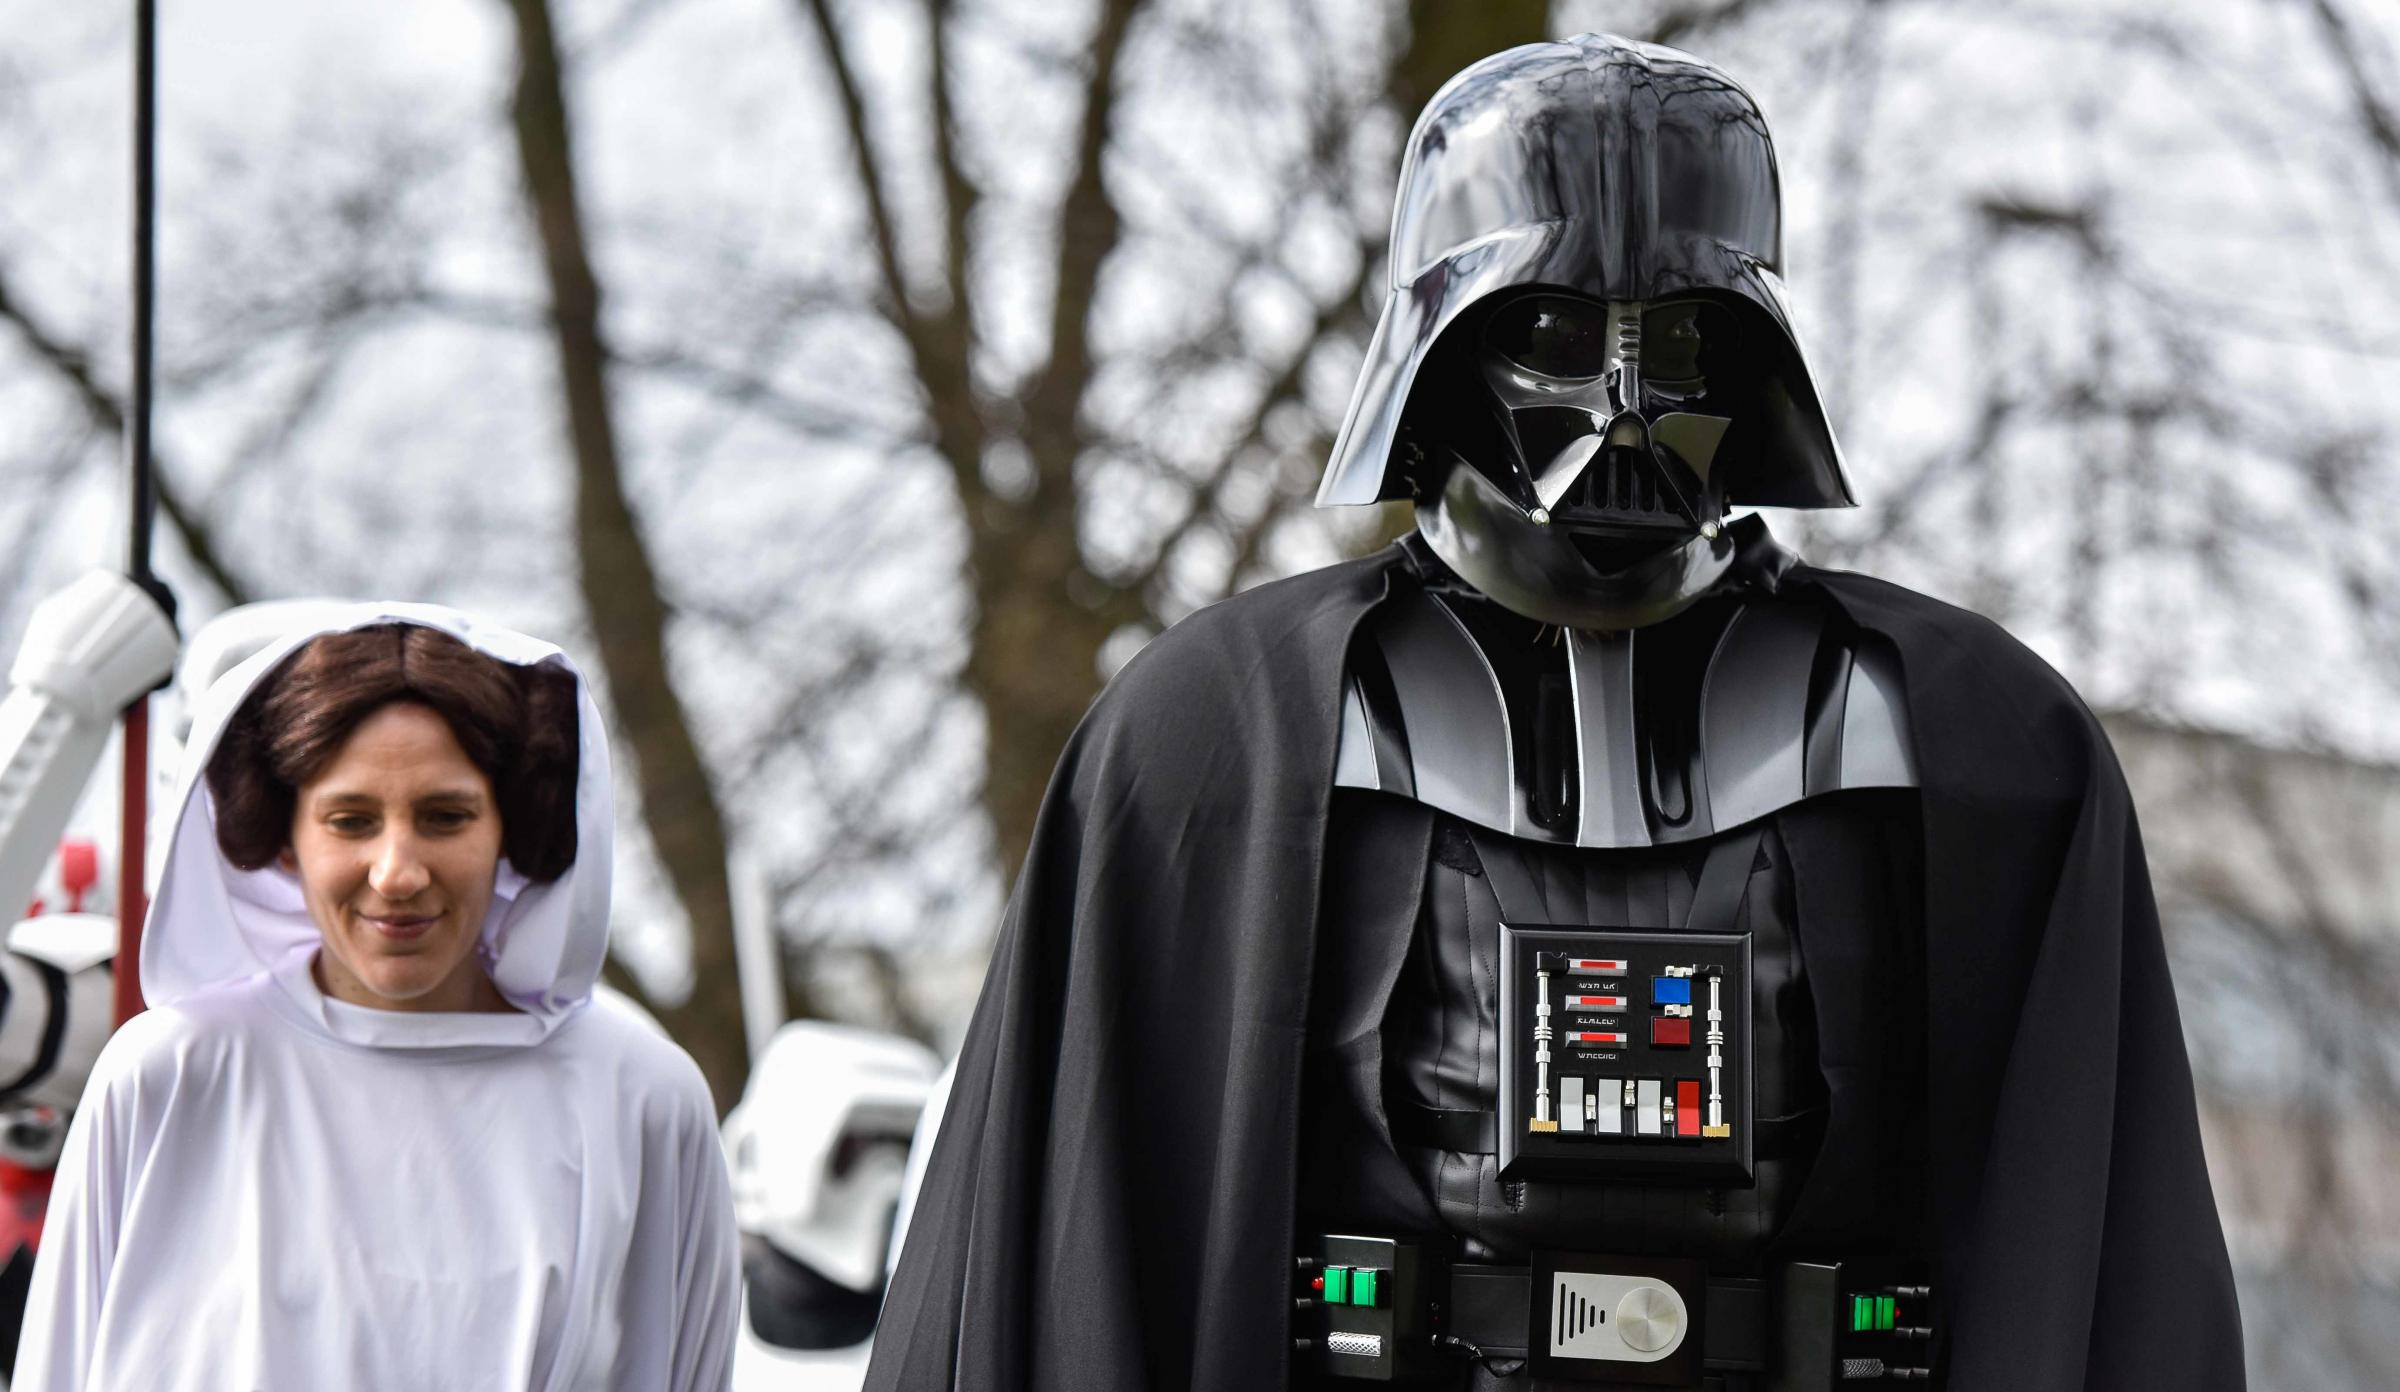 Darth Vader and other Star Wars characters in Bradford